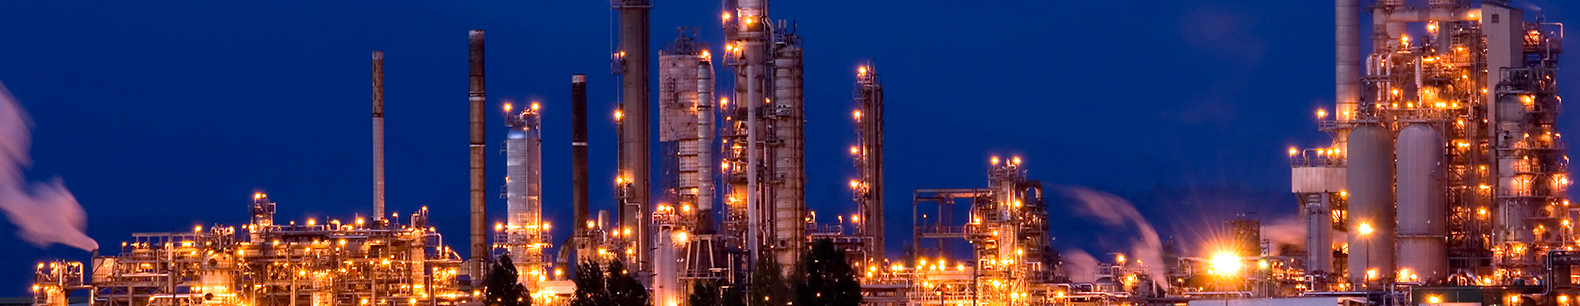 Refining & Petrochemical